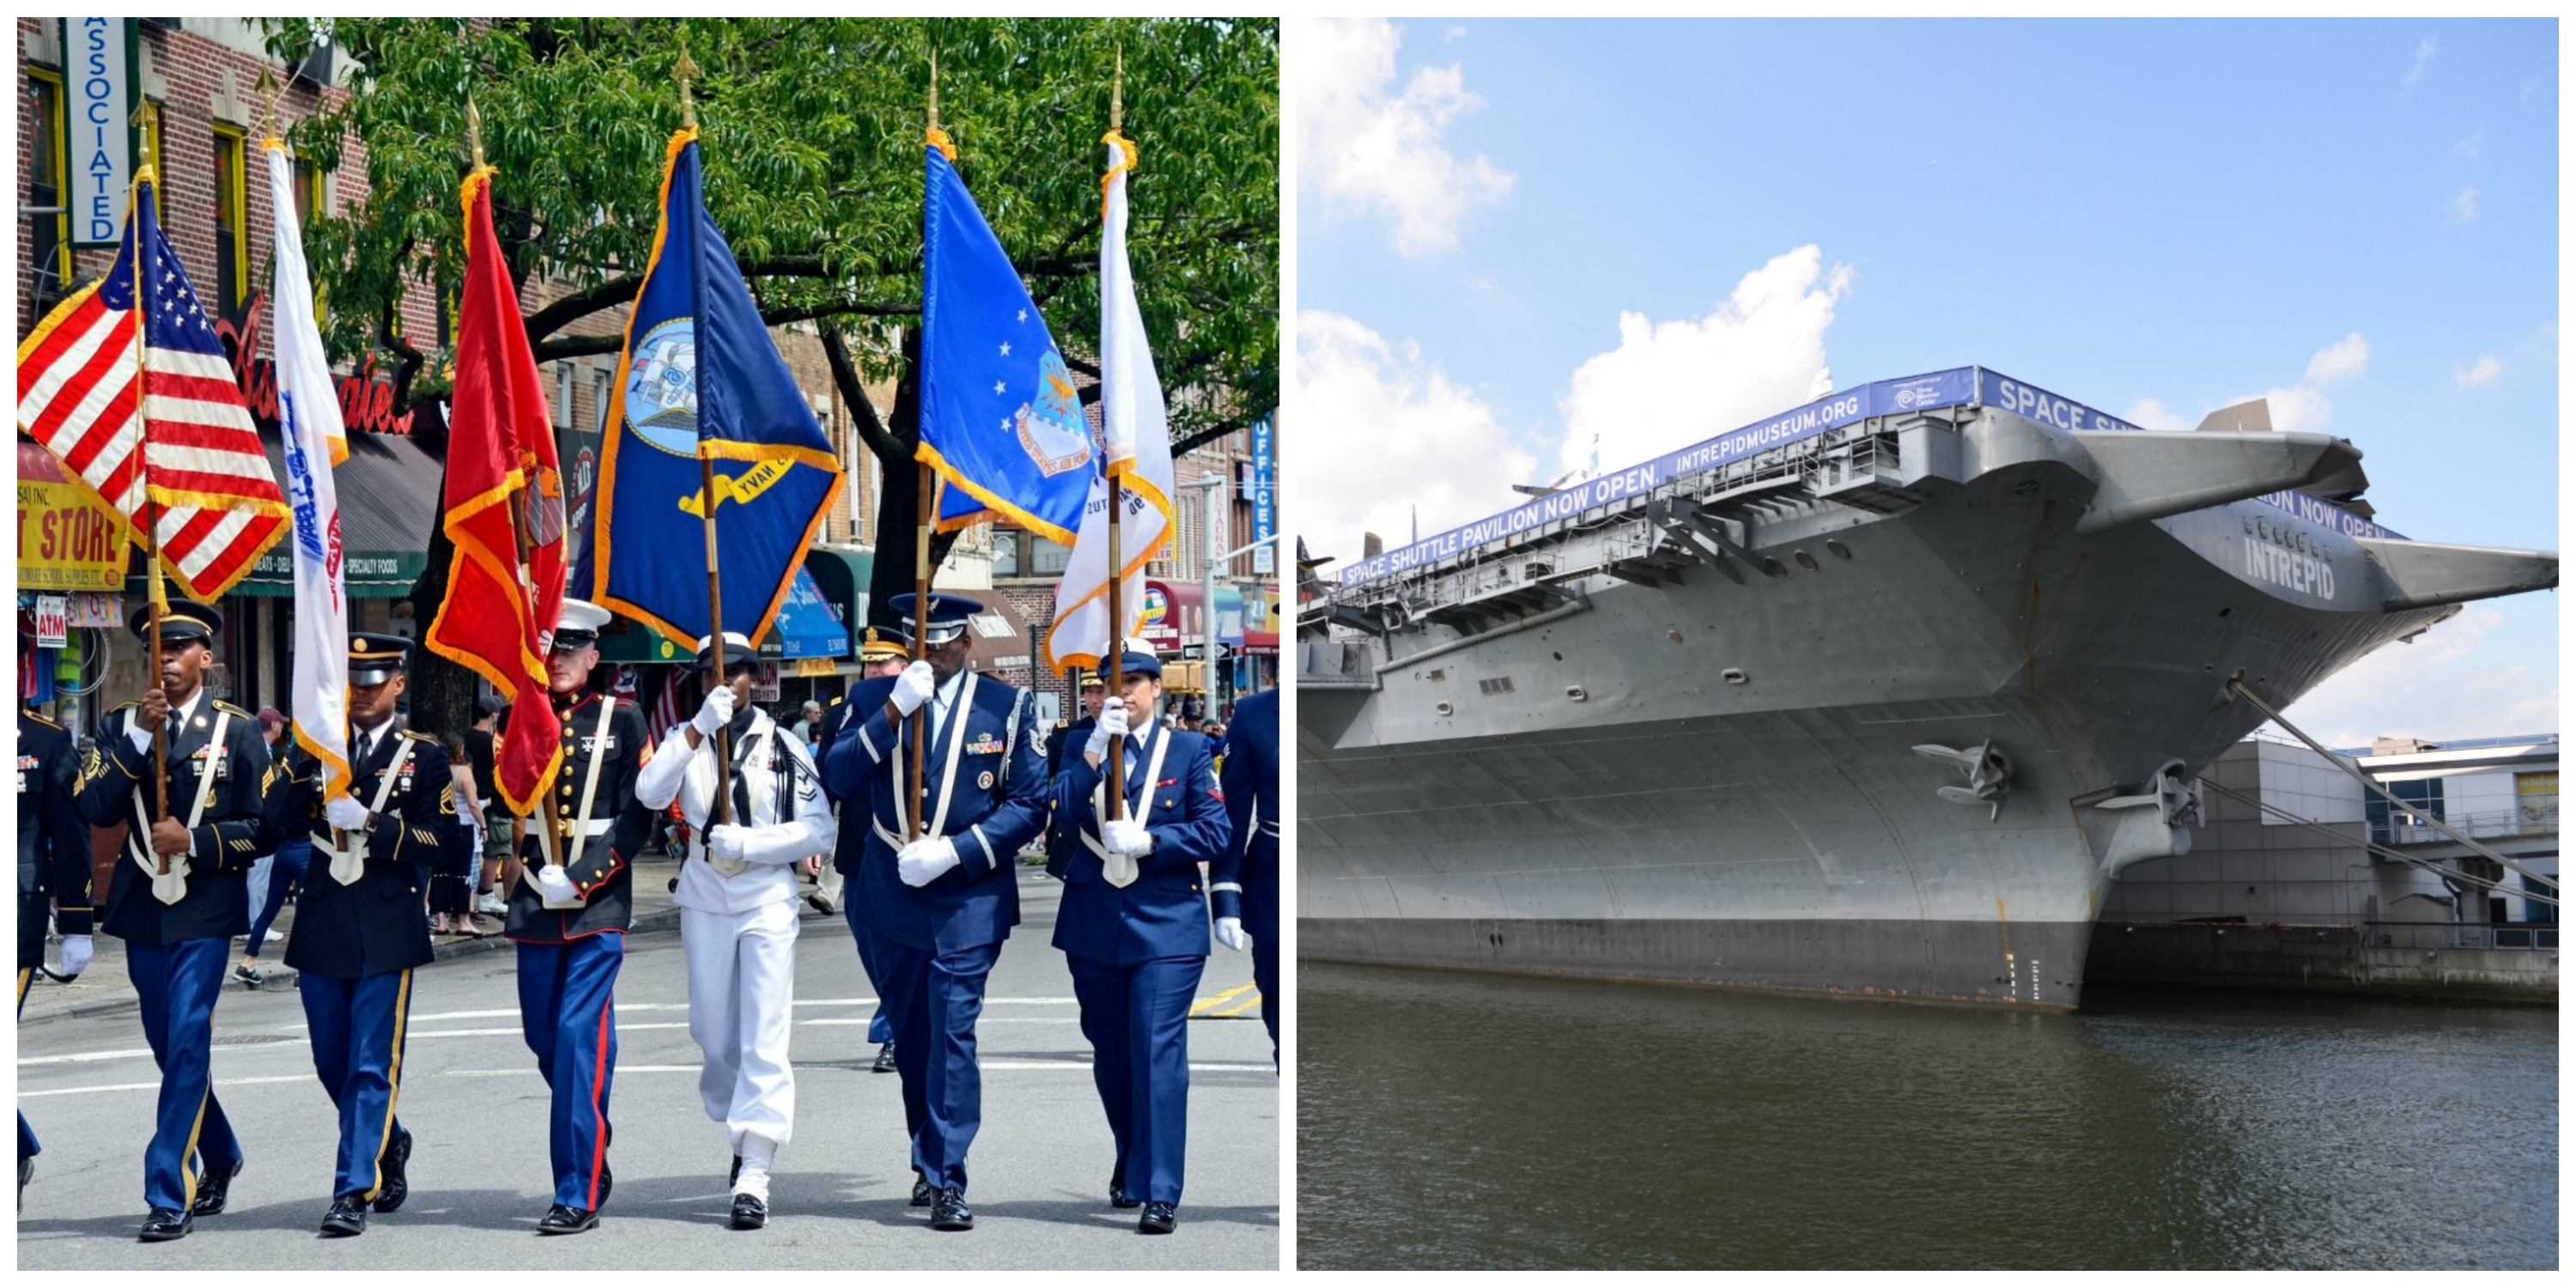 Brooklyn Memorial Day Parade | United Military Veterans of Kings County / Intrepid Air & Space Museum | Intrepid Museum/WikiCommons